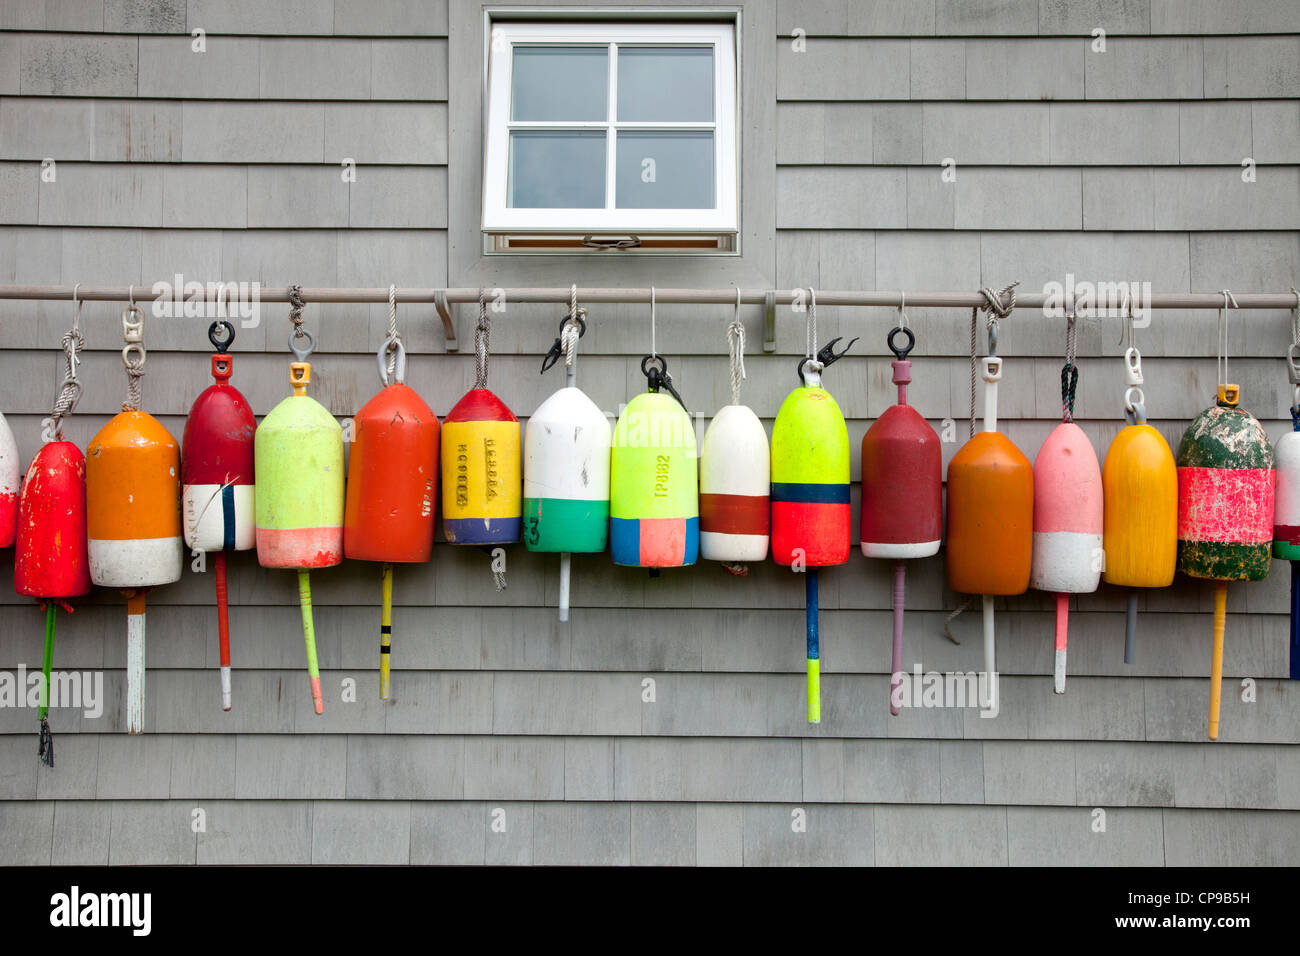 Row of Buoys Hanging on Side of Building, Southampton, New York, USA - Stock Image